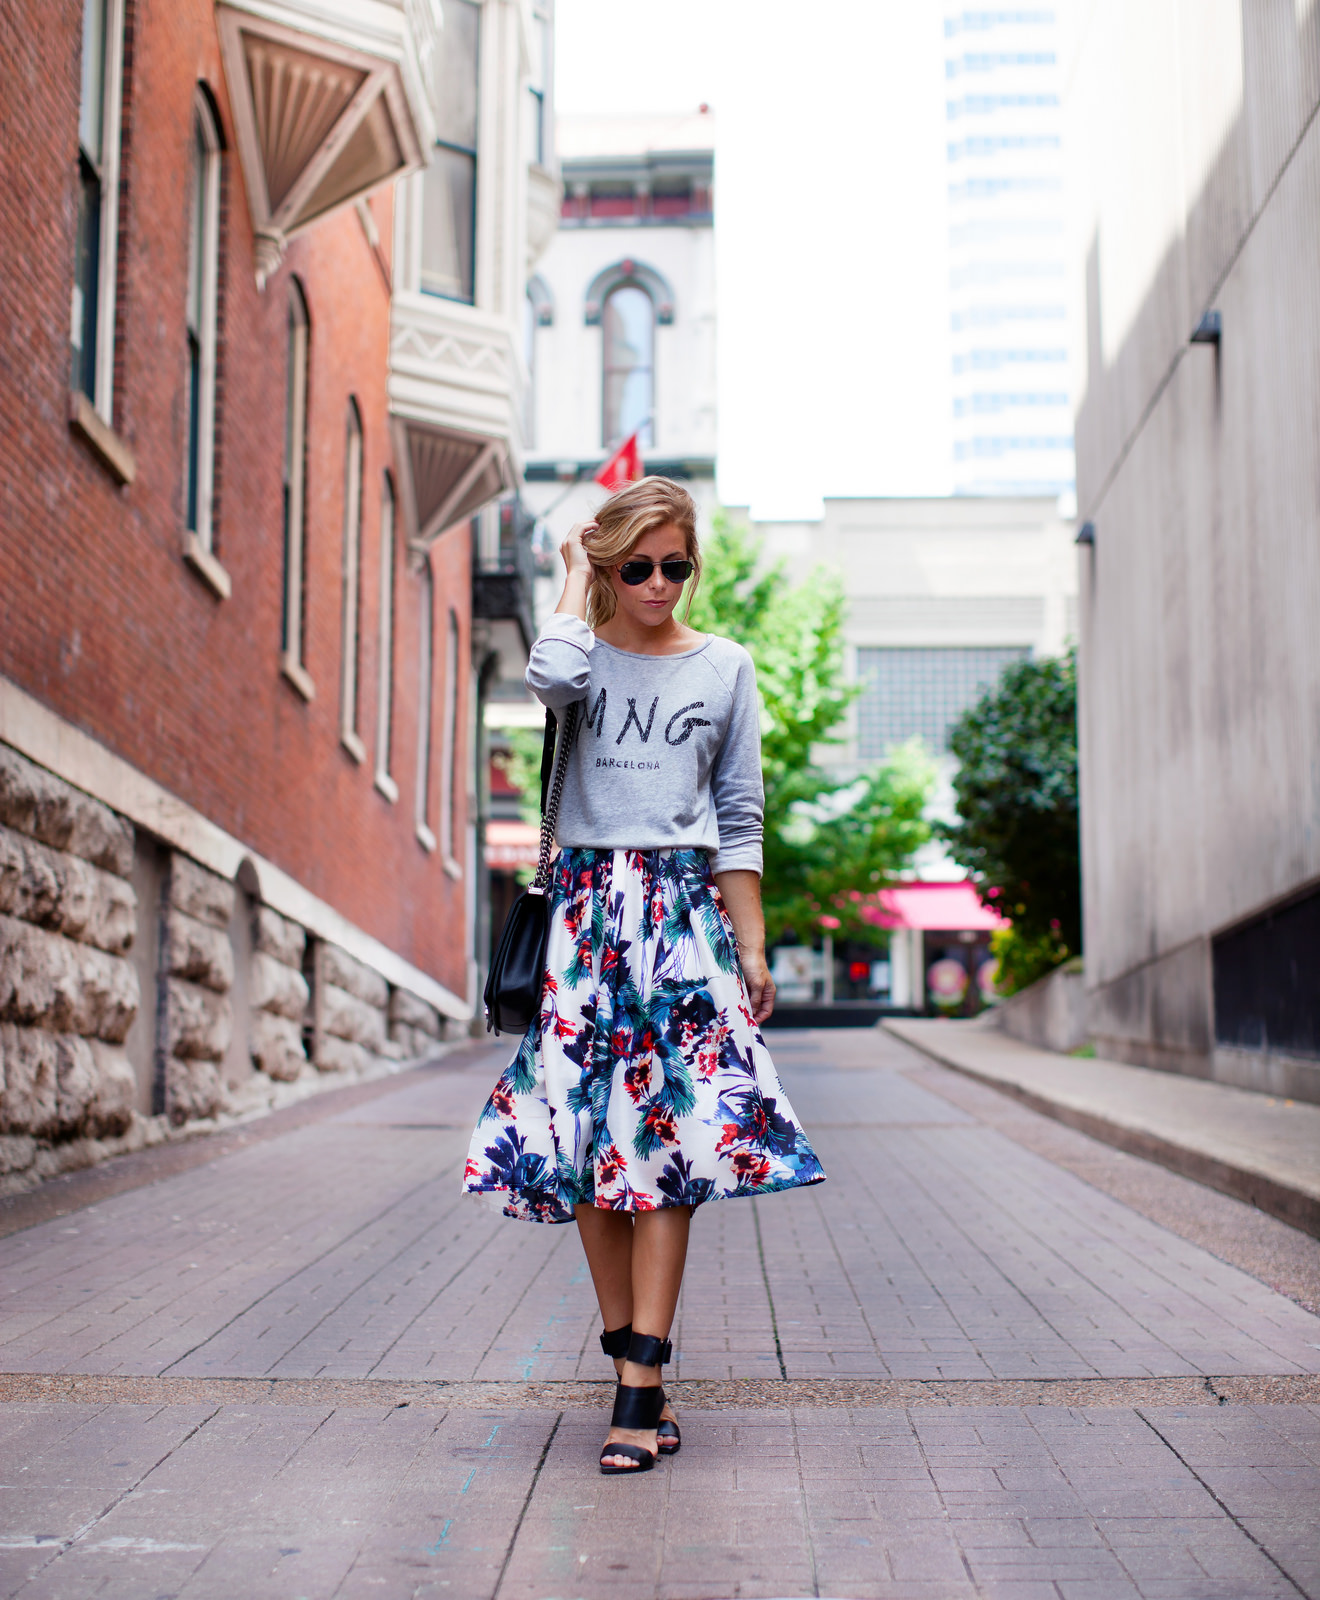 Mary Seng is wearing a logo sweatshirt from Mango, tropical midi skirt from Chicwish, shoes from Tibi and the bag is from Chanel